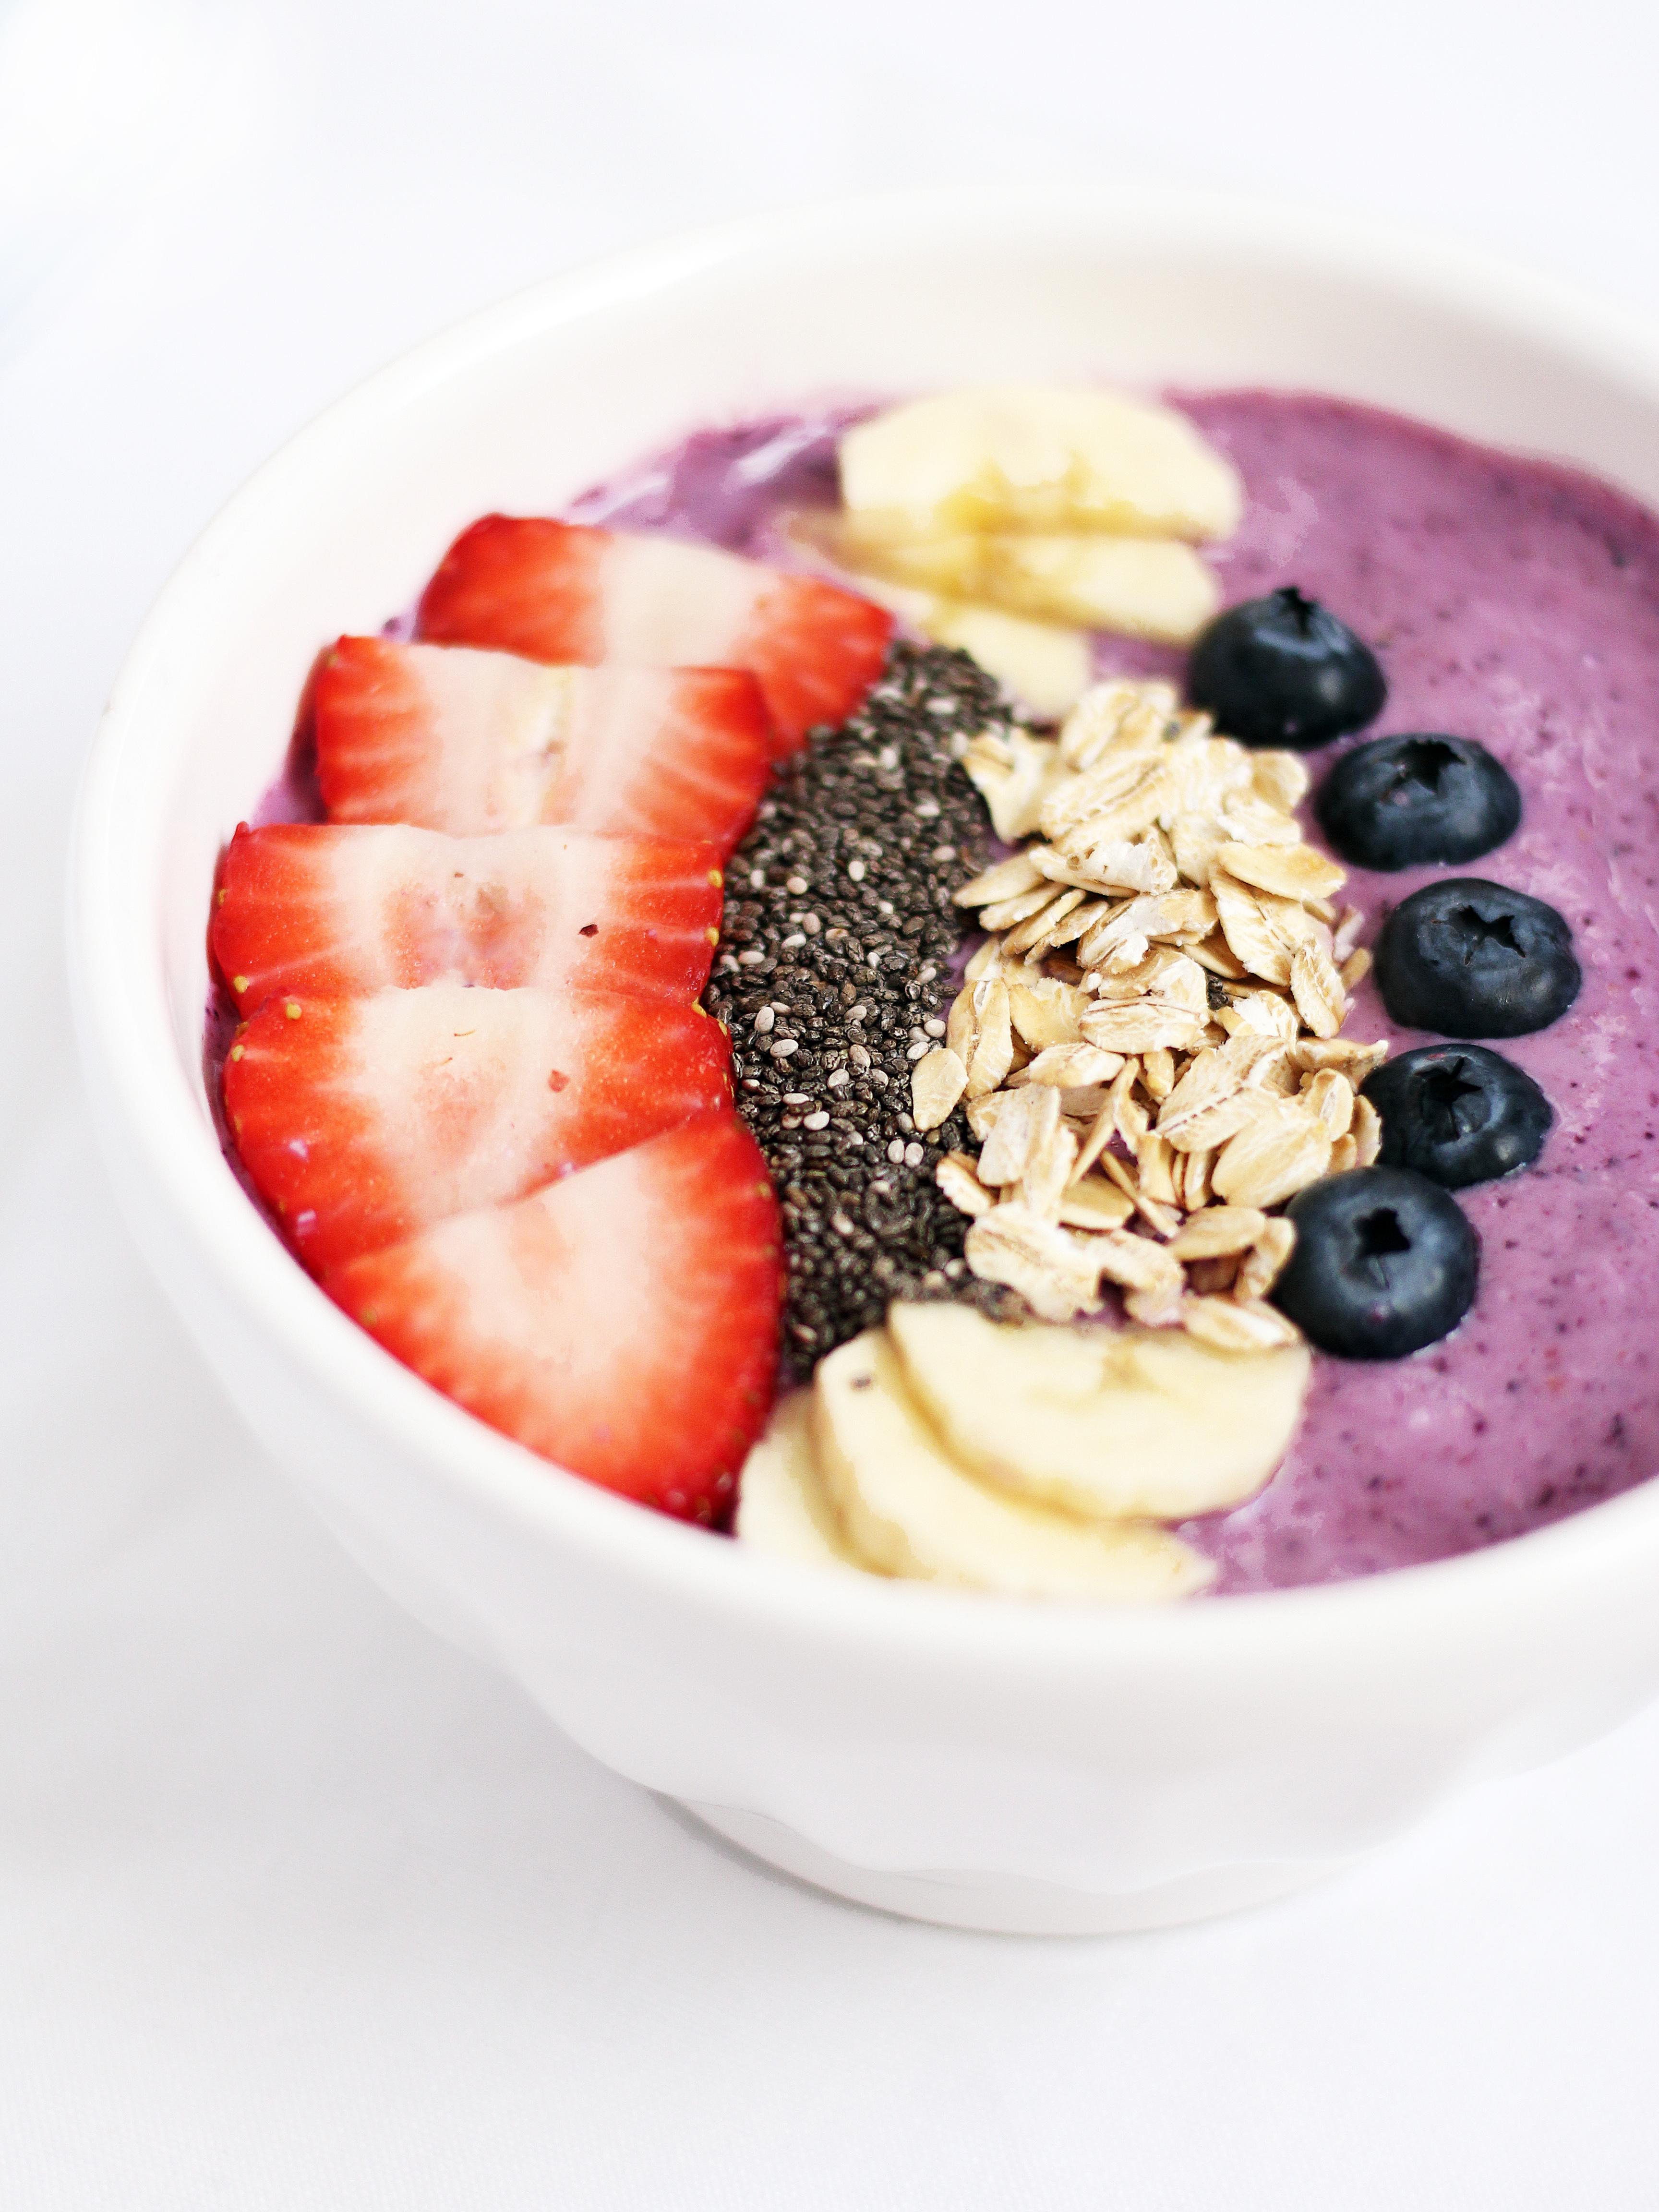 April smoothie bowl recipe berry banana the berry banana smoothie bowl recipe is a blend of blueberries strawberries banana ccuart Image collections